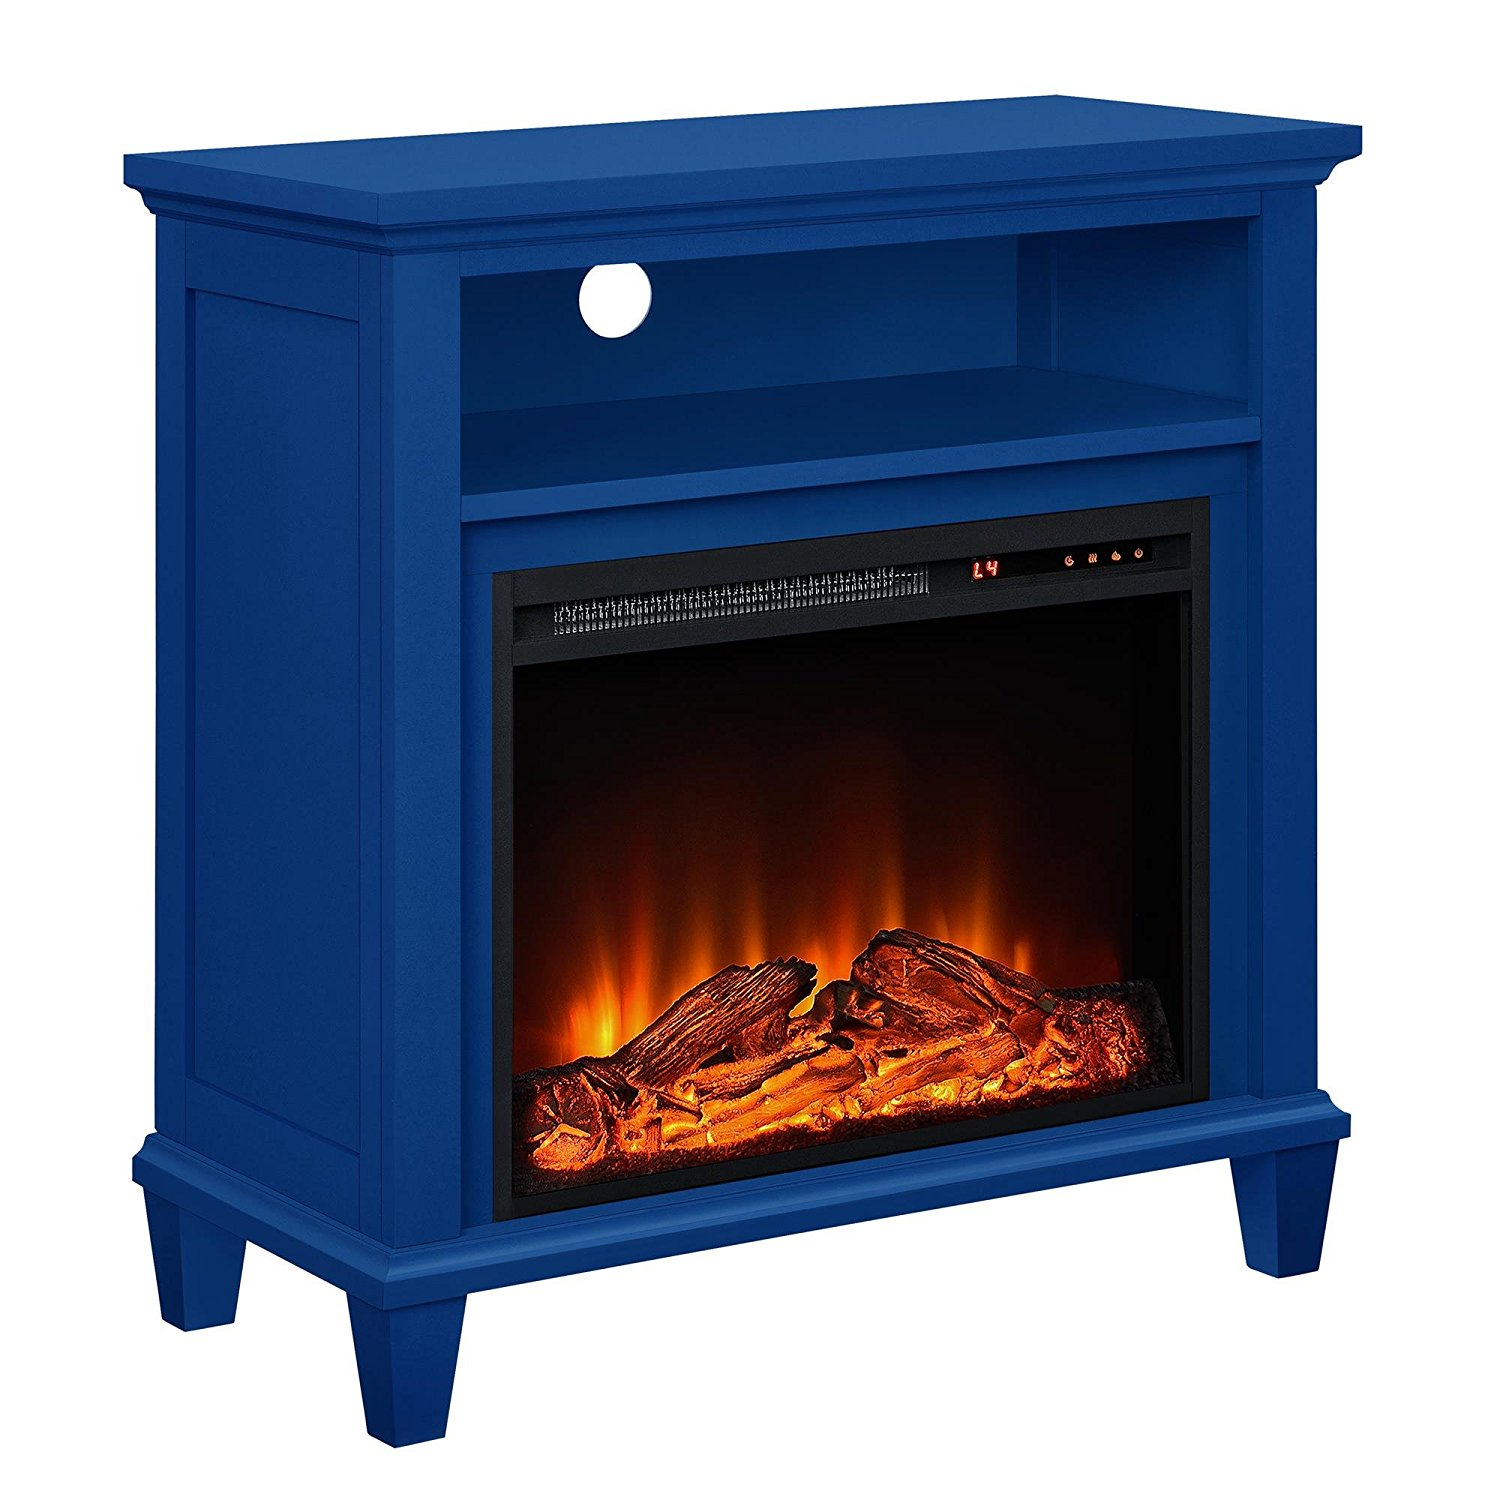 Cheap Cheap Tv Stand Fireplace Find Cheap Tv Stand Fireplace Deals